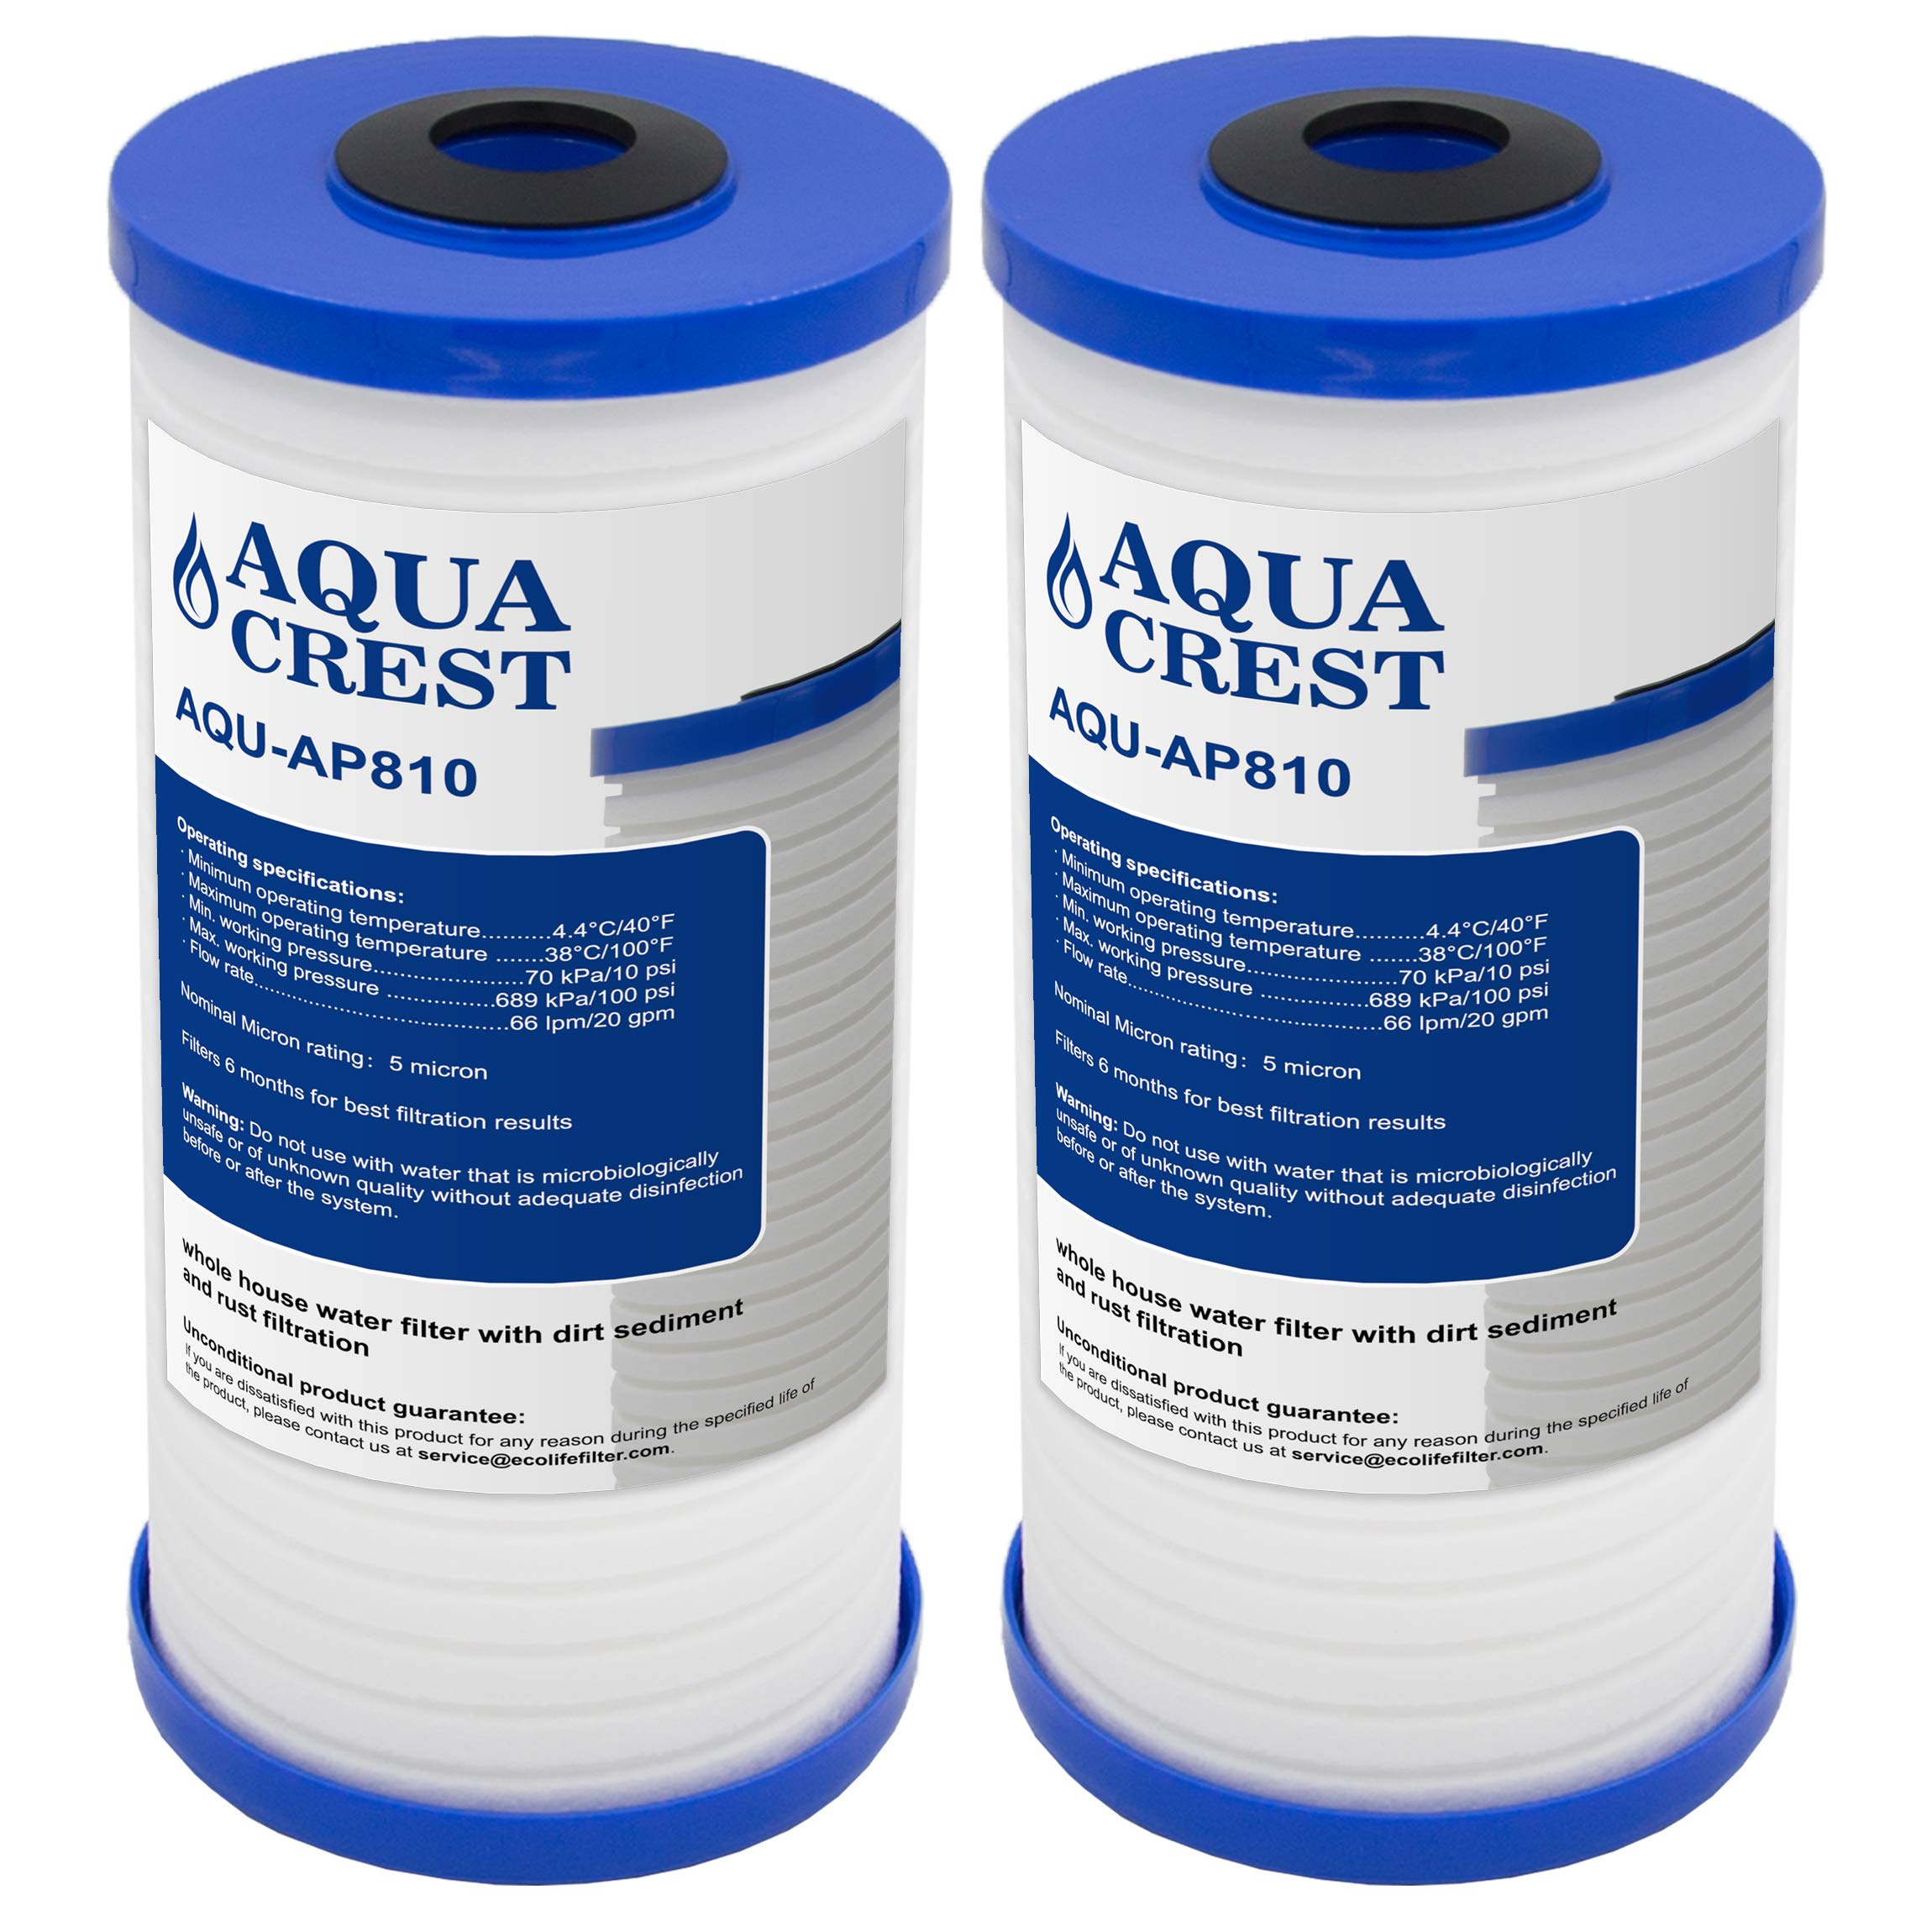 AQUACREST AP810 Whole House Water Filter, Compatible with 3M Aqua-Pure AP810, AP801, Whirlpool WHKF-GD25BB, 5 Micron (Package May Vary)(Pack of 2)